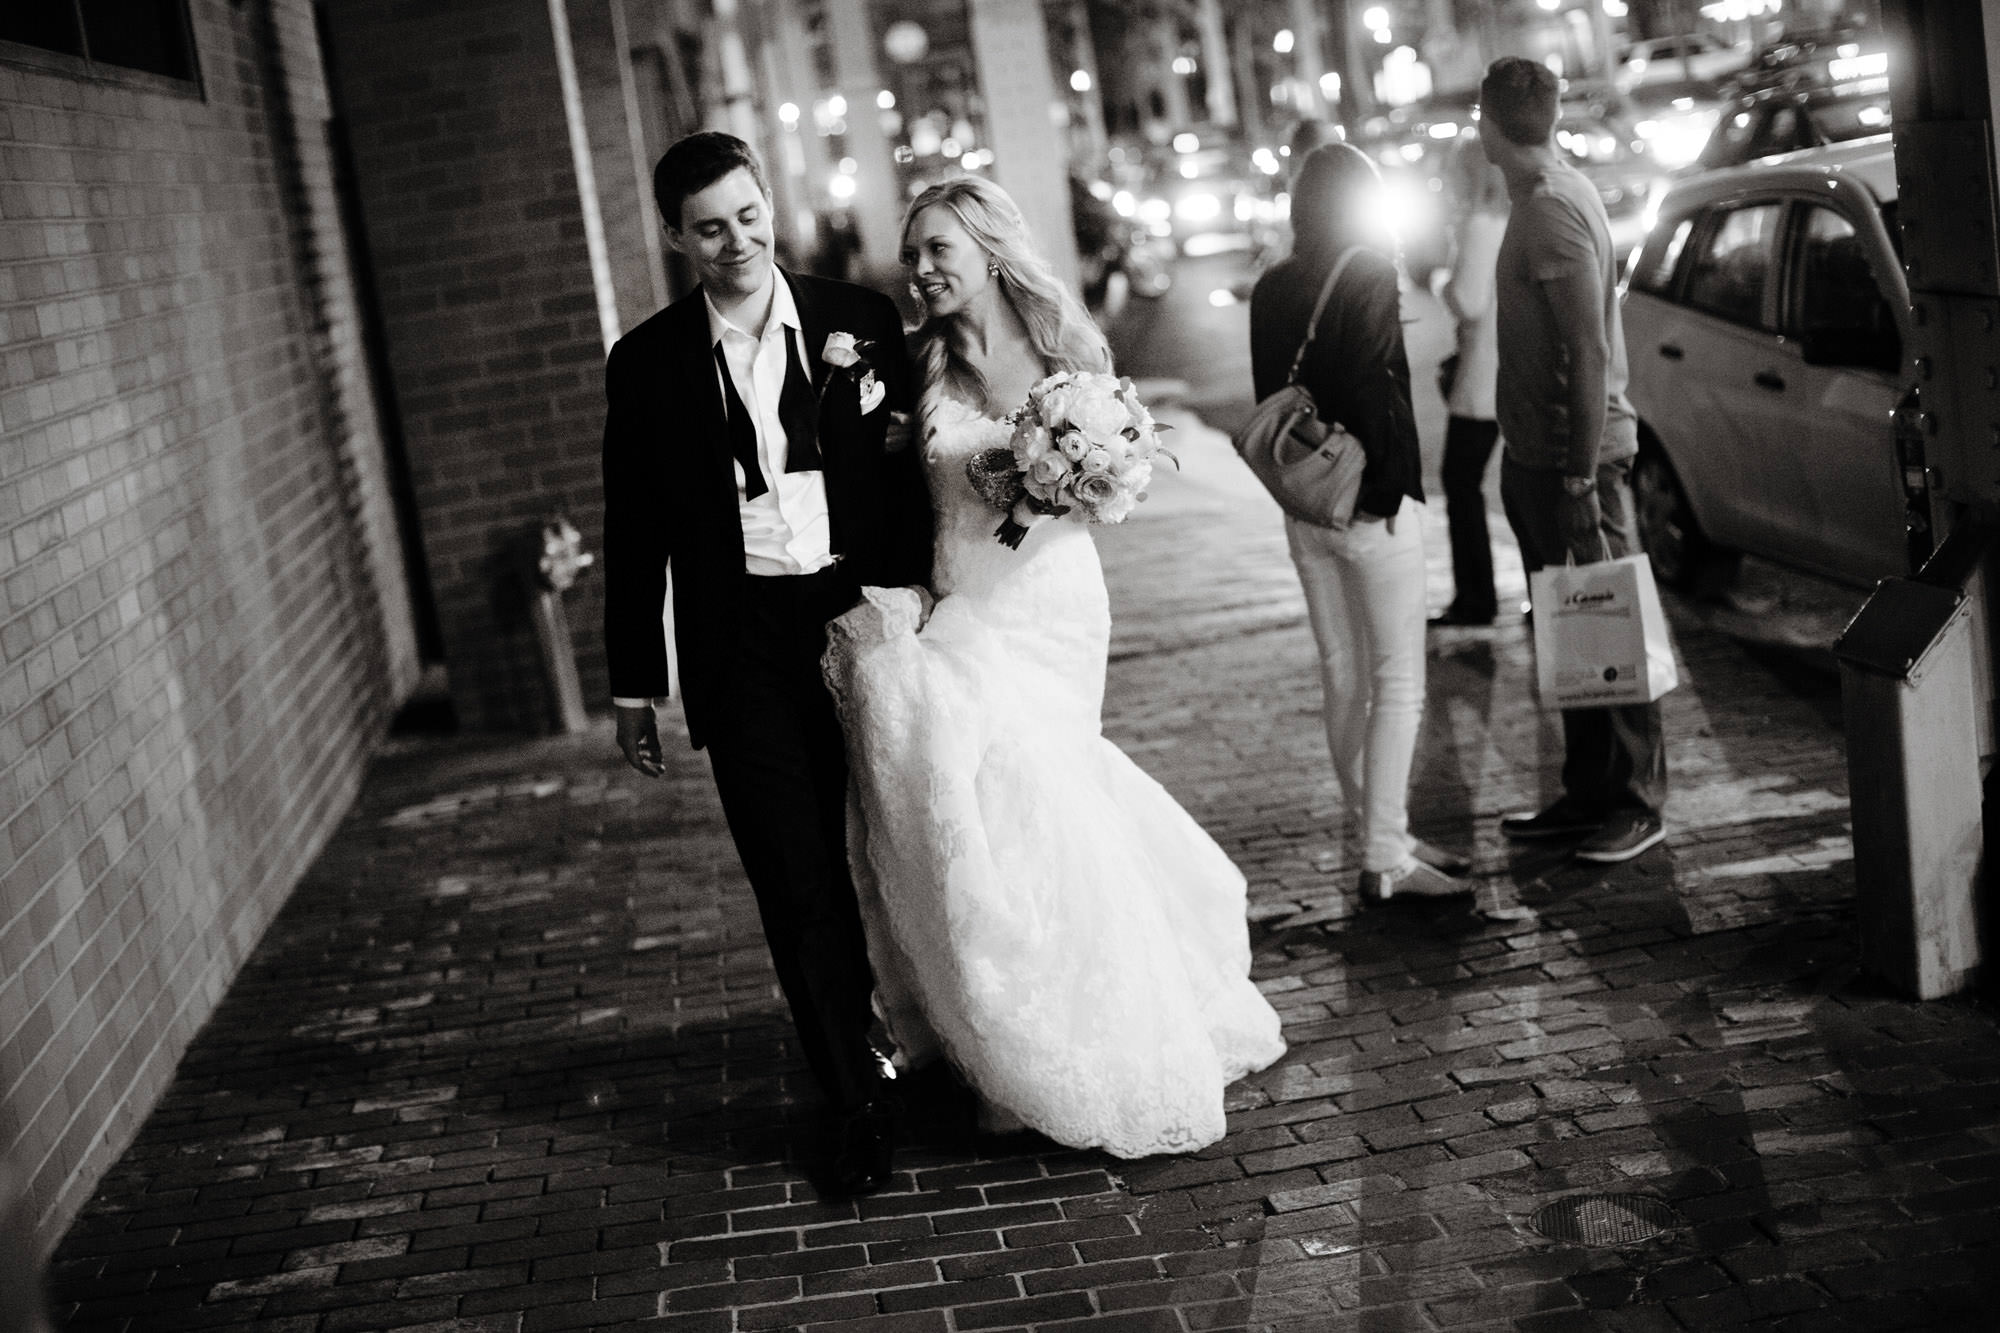 The bride and groom walk through Georgetown in Washington, DC following their Sequoia DC wedding.